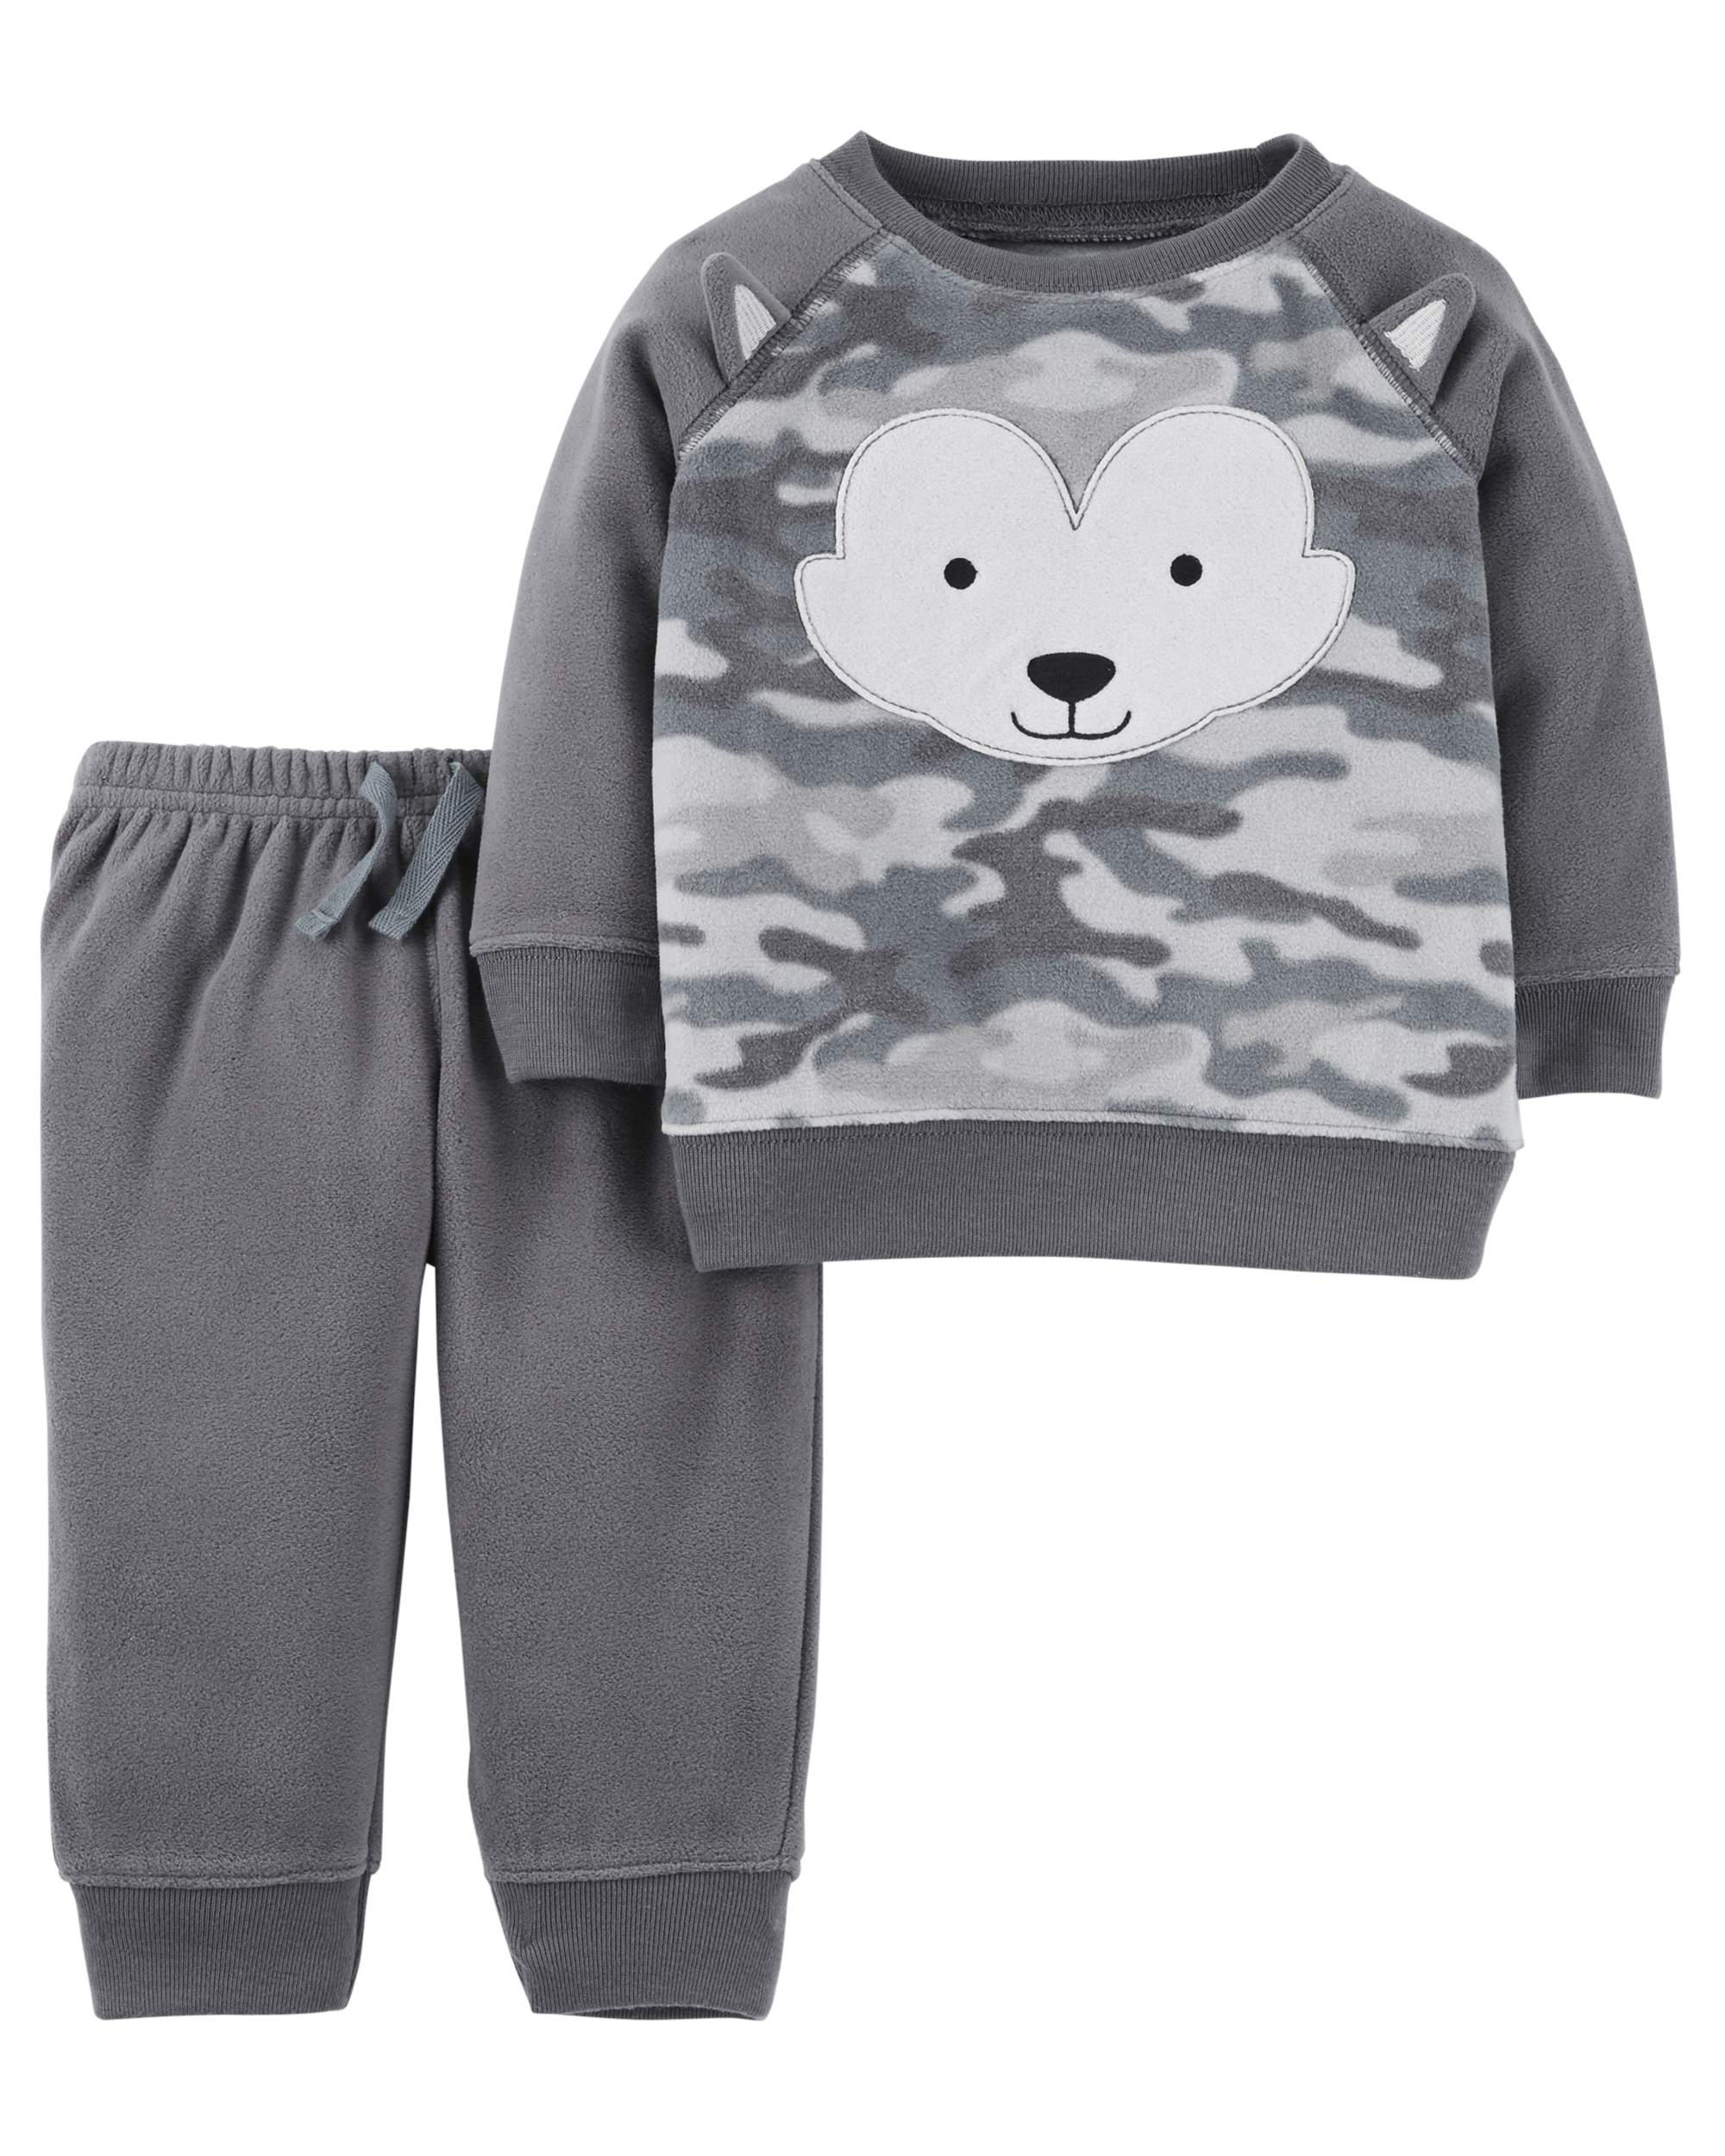 da810a7c9 Child of Mine by Carter's - Child of Mine by Carter's Toddler Boy ...